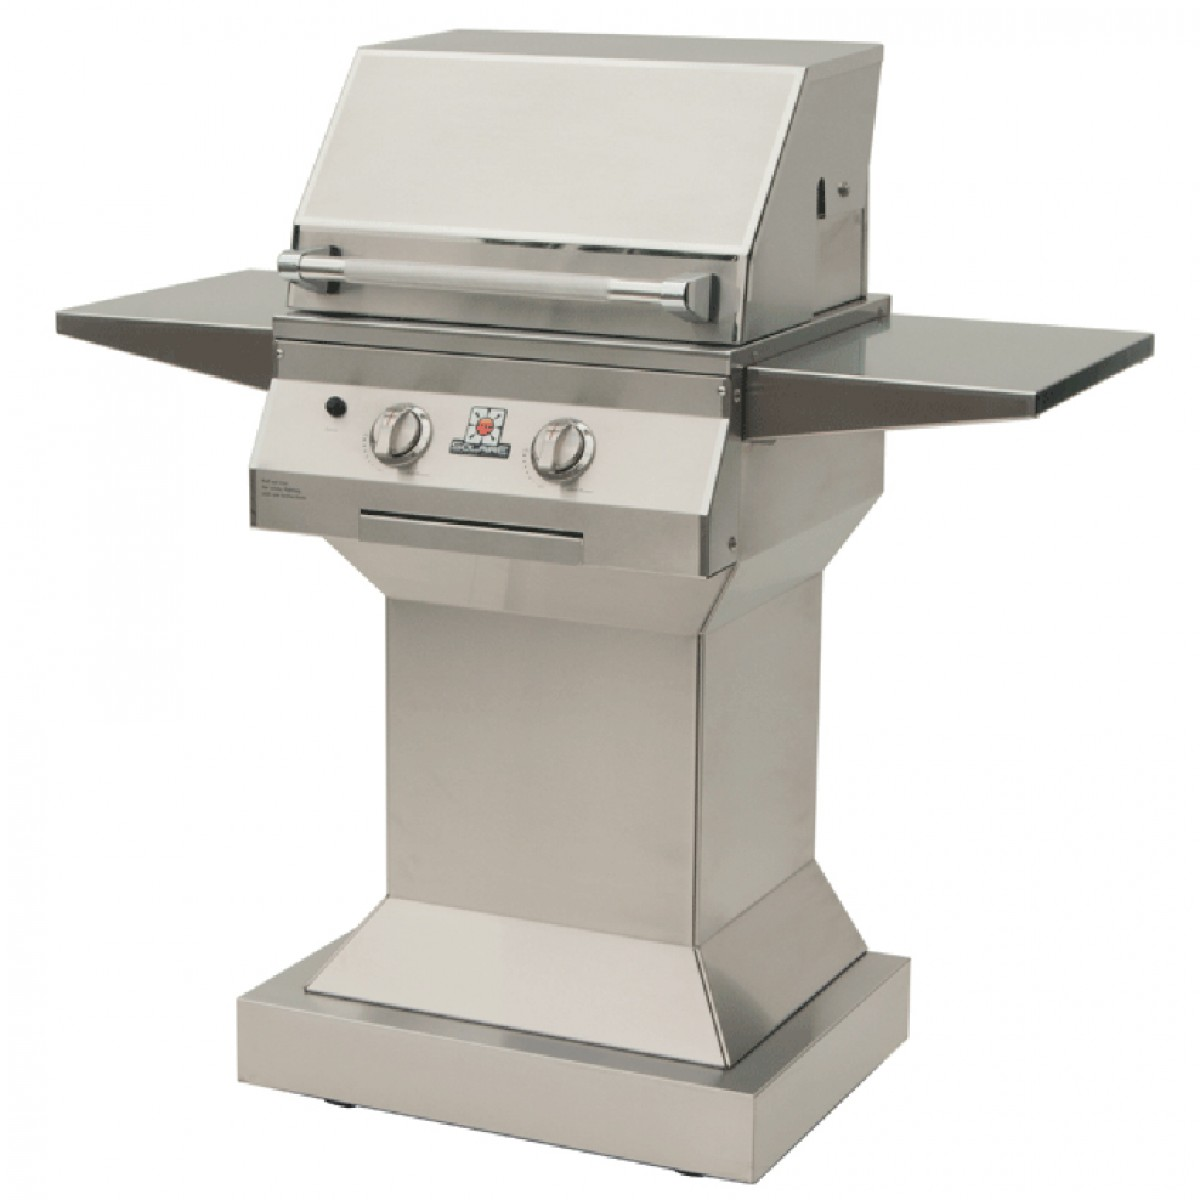 Solaire Sol Irbq 21gir Ped Lp 21 Lp Infrared Grill On